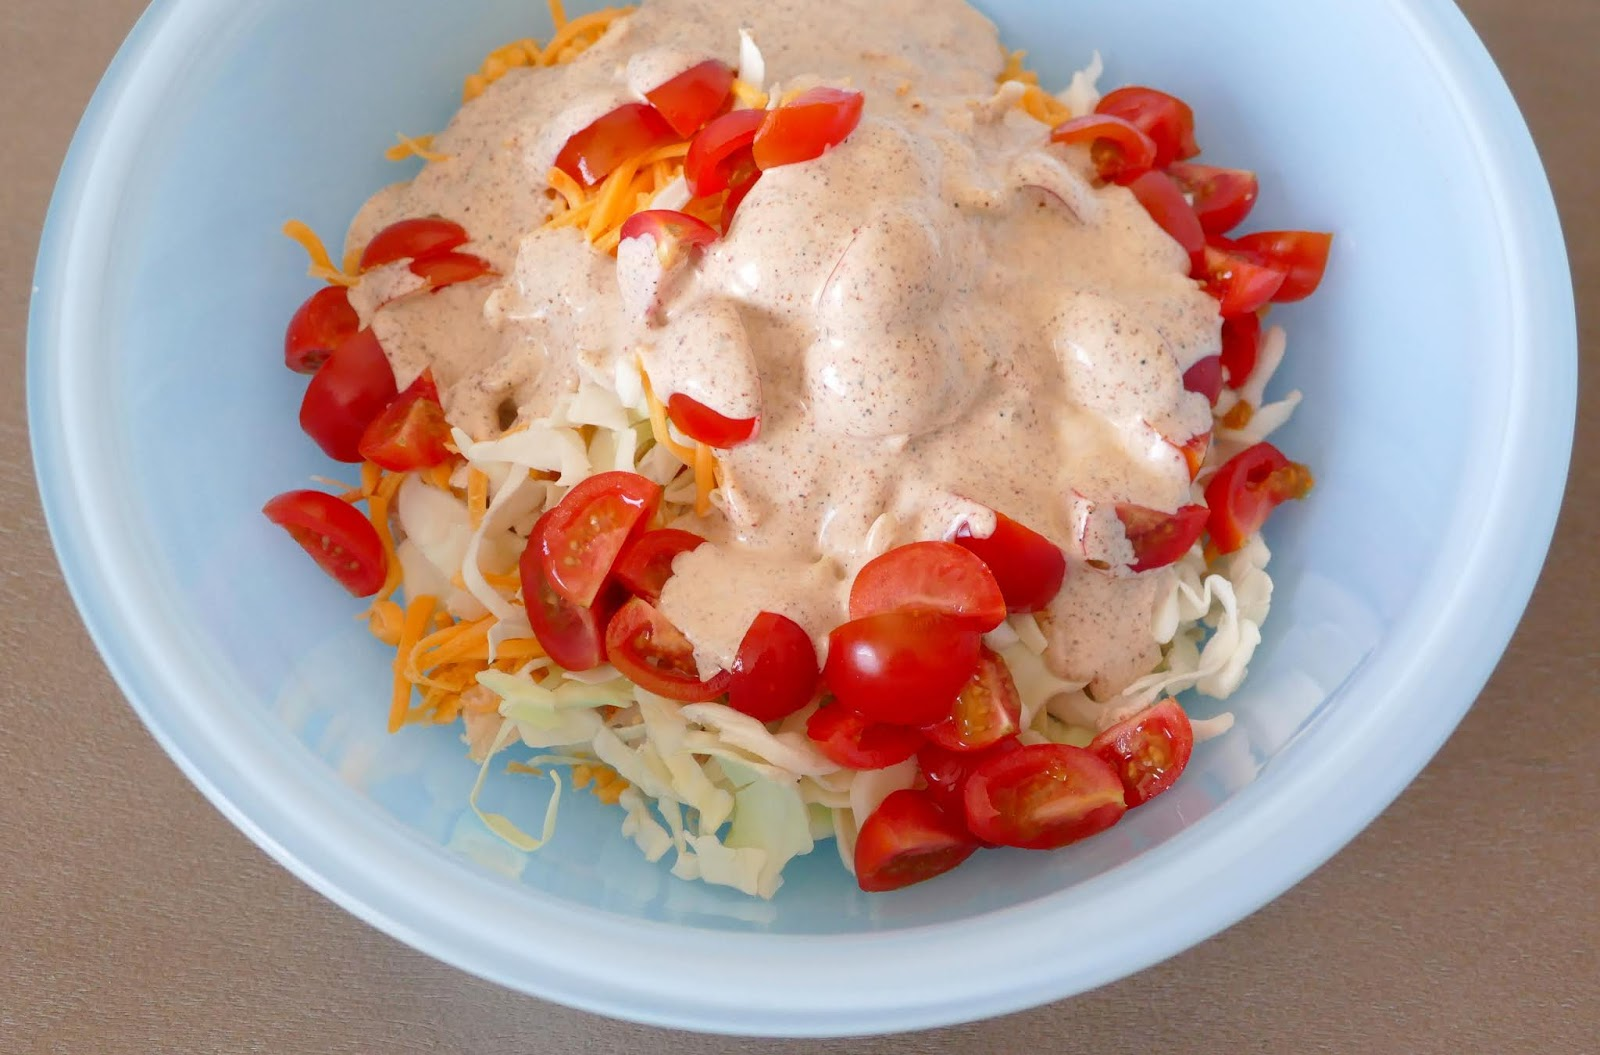 A delicious and unique Southwest Mexican flavored side dish! This coleslaw is perfect served at a BBQ, picnic or for taco night. Serve in spinach or tomato wrap for lunch or dinner! Made with chicken, cheddar cheese, cumin, chili powder, lime juice, ranch and more!